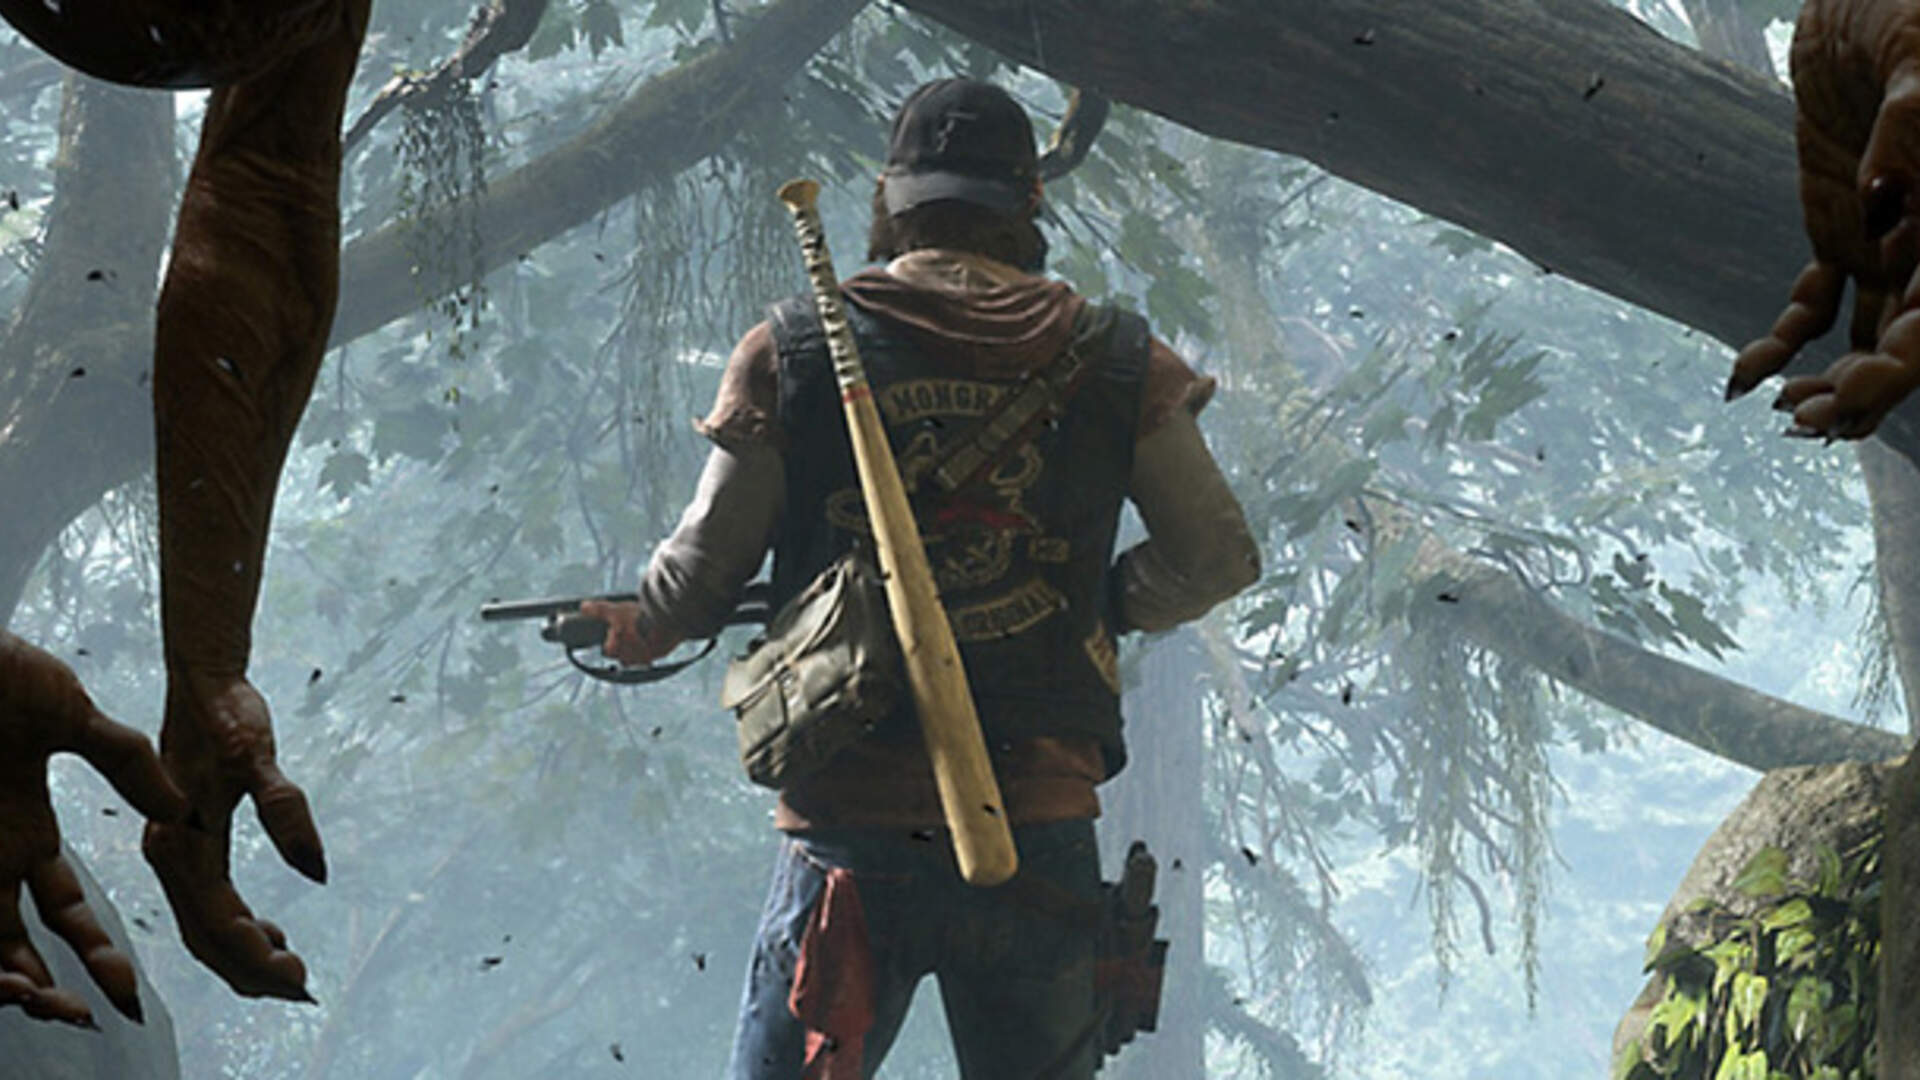 Is Days Gone on Xbox One?